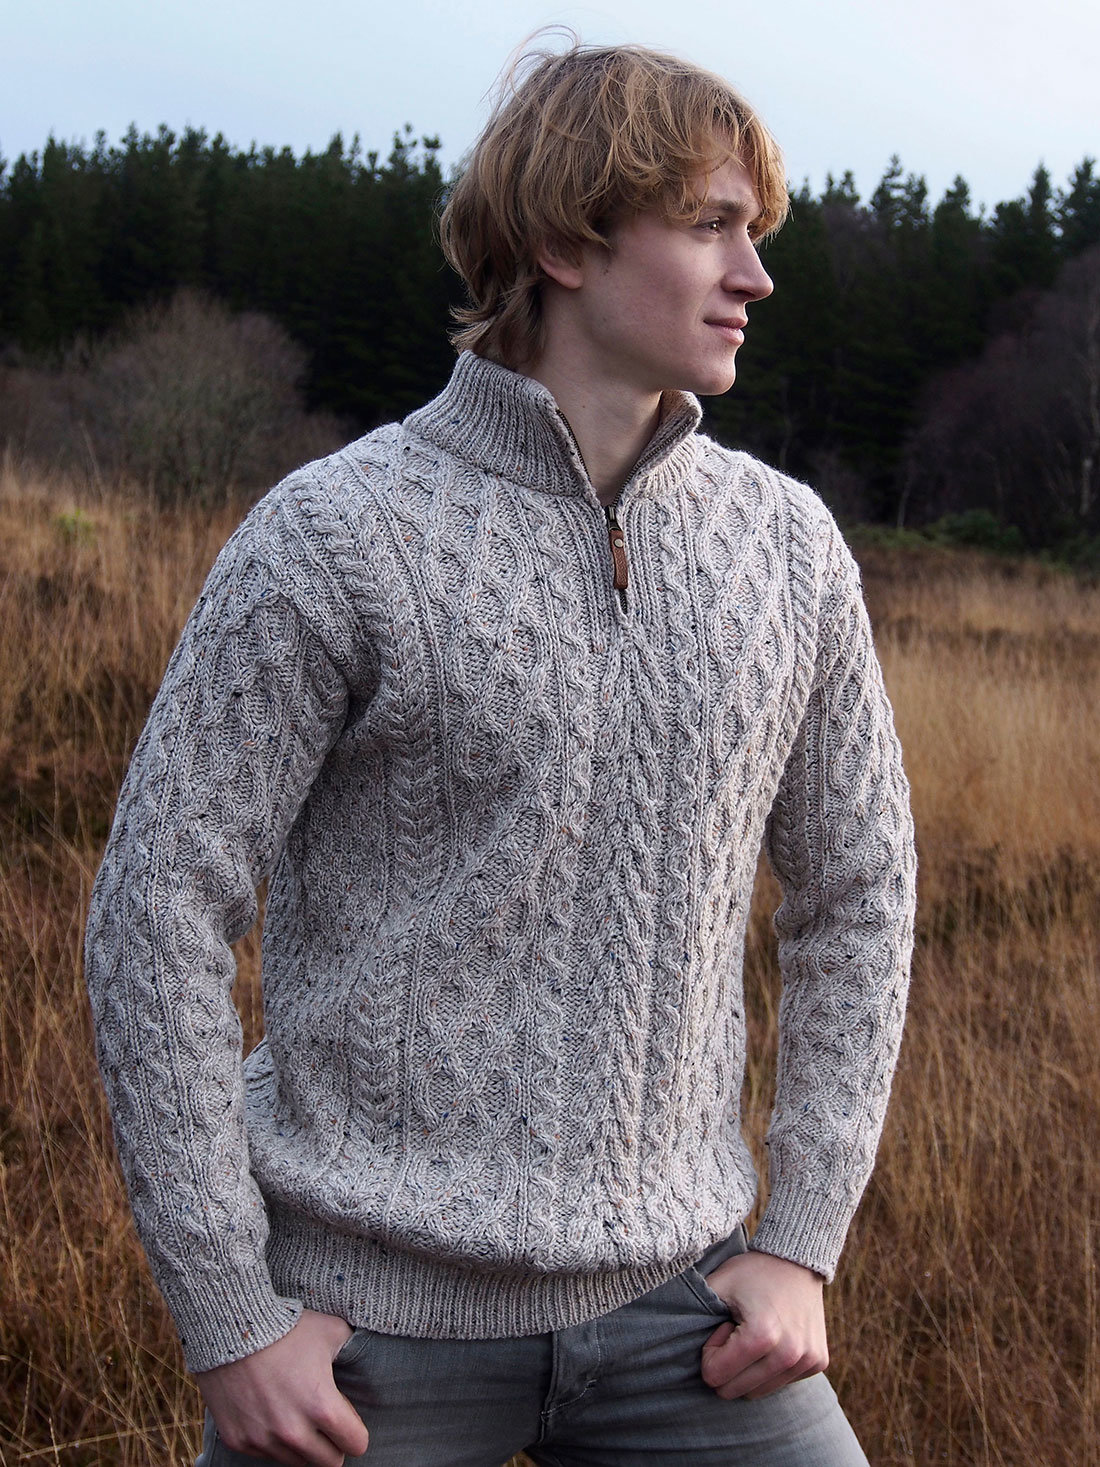 How to Use: Knitting Sweater